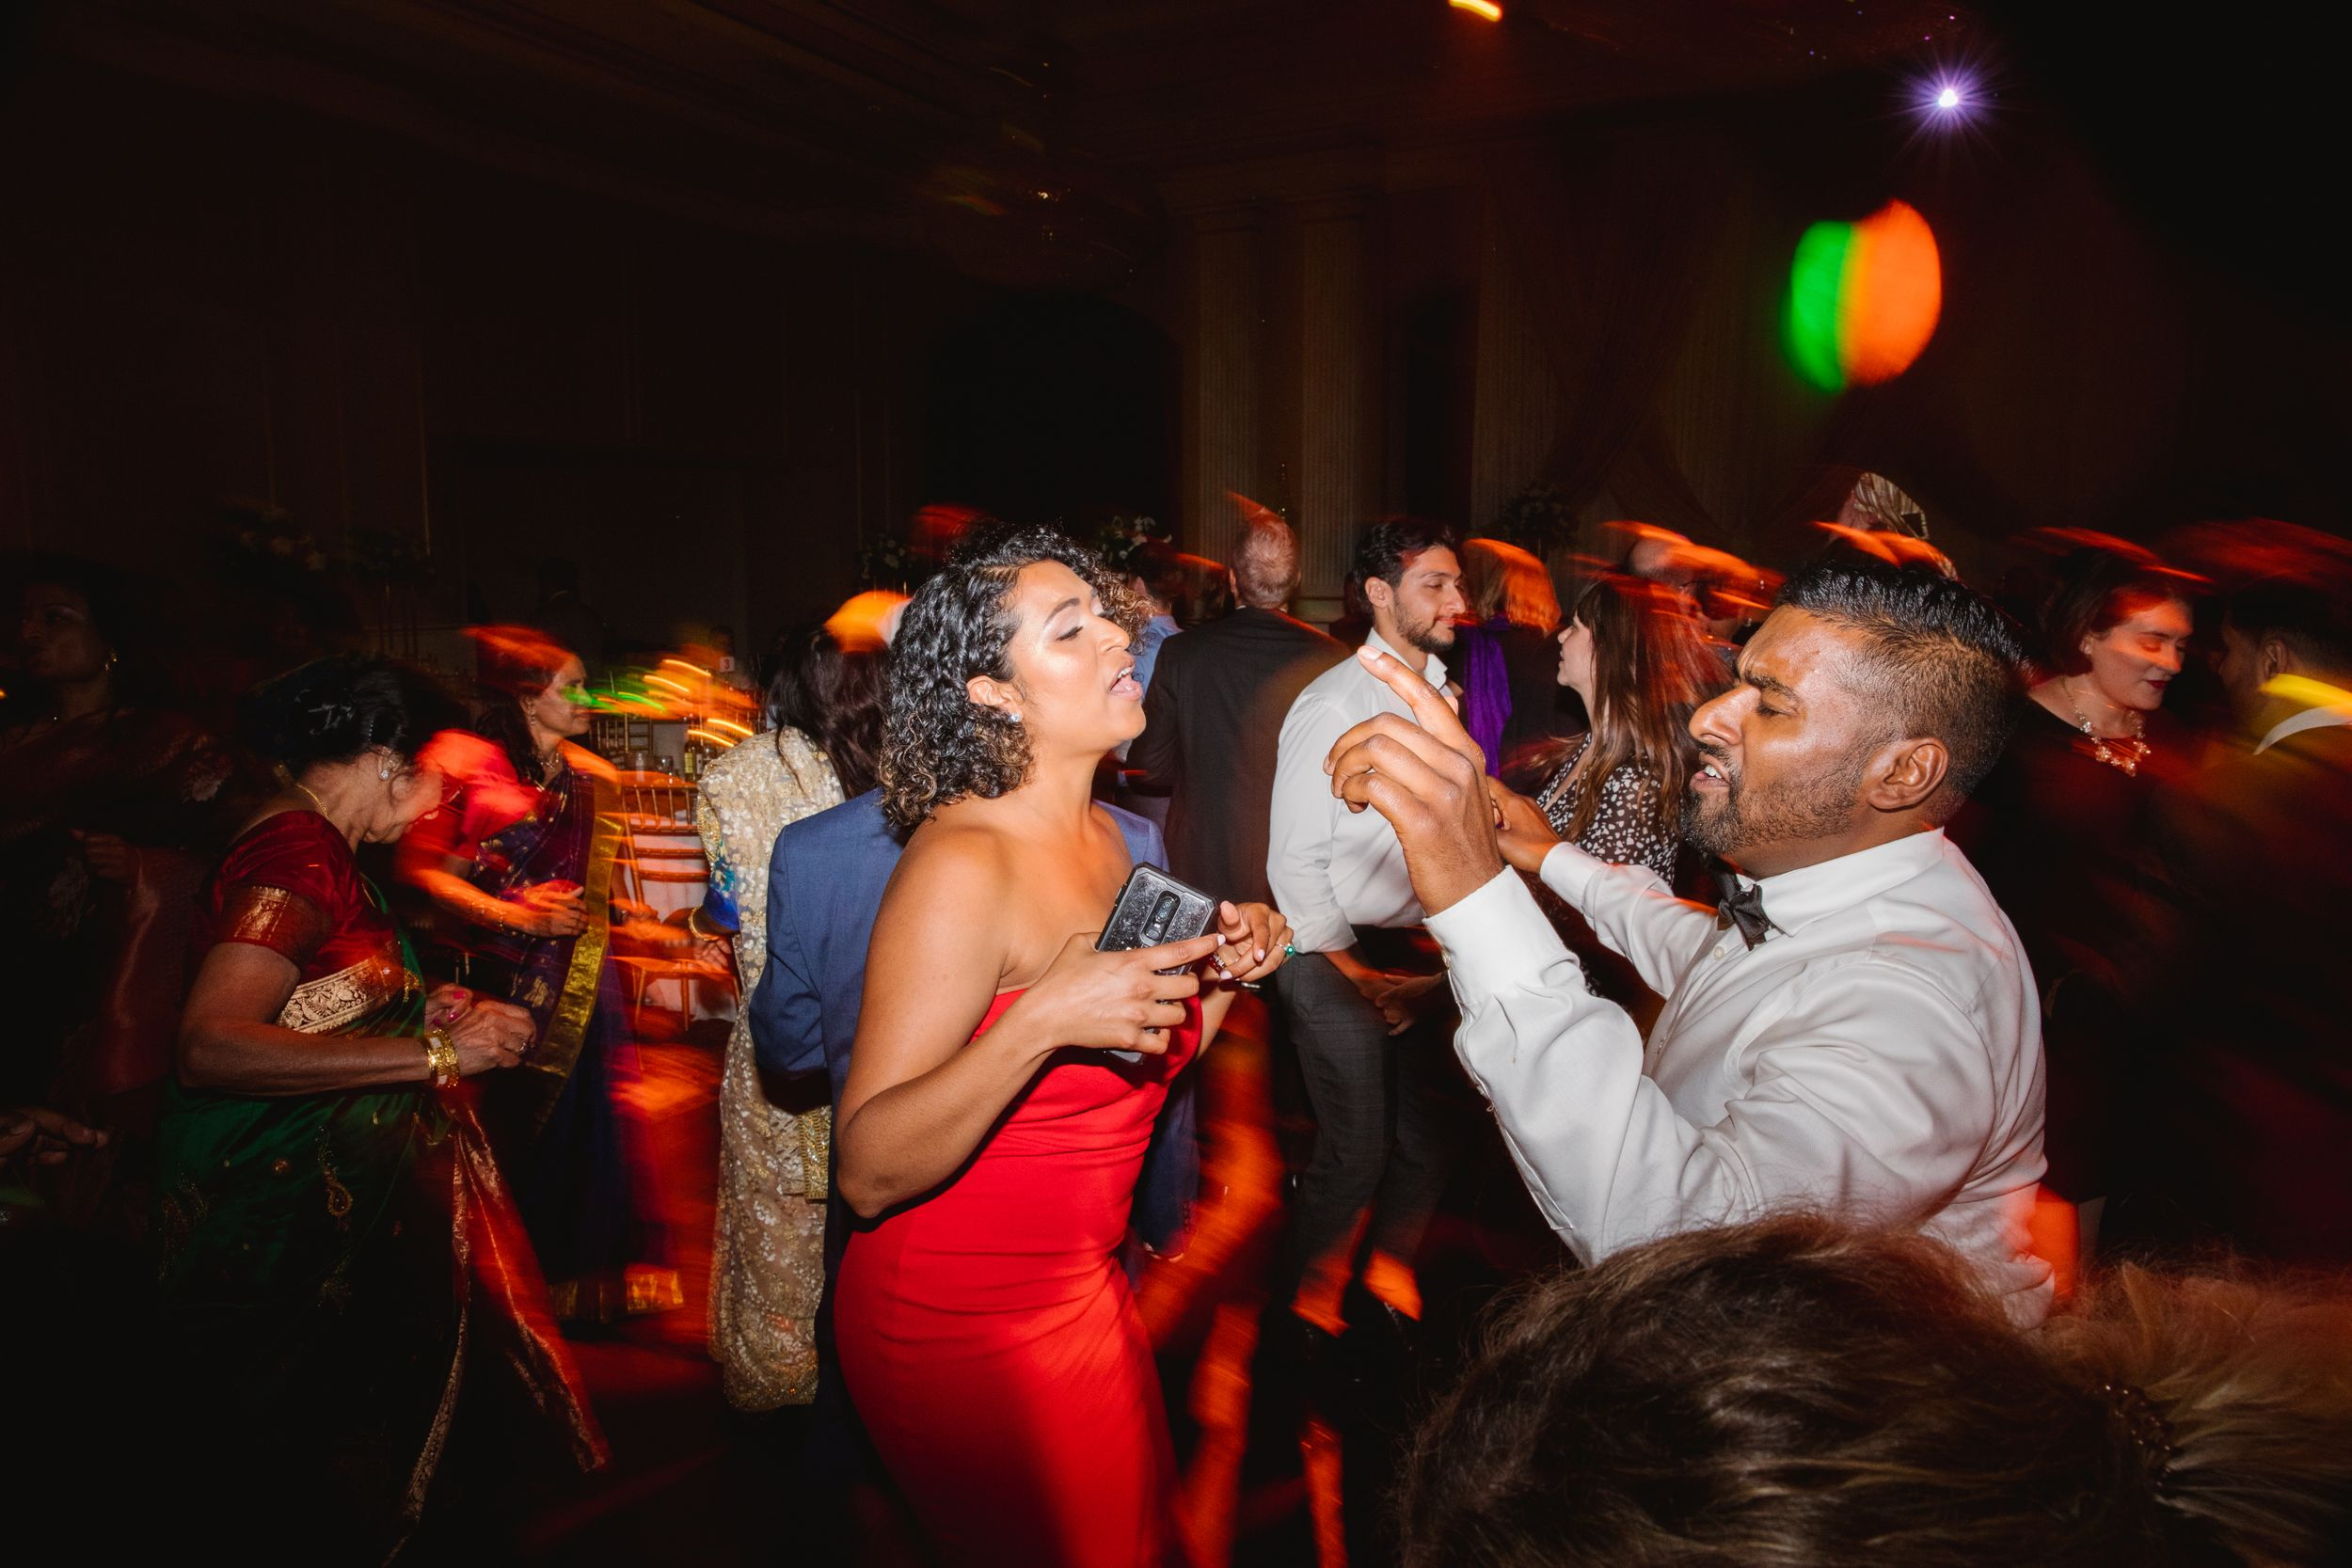 wedding guests dancing and singing with red lights